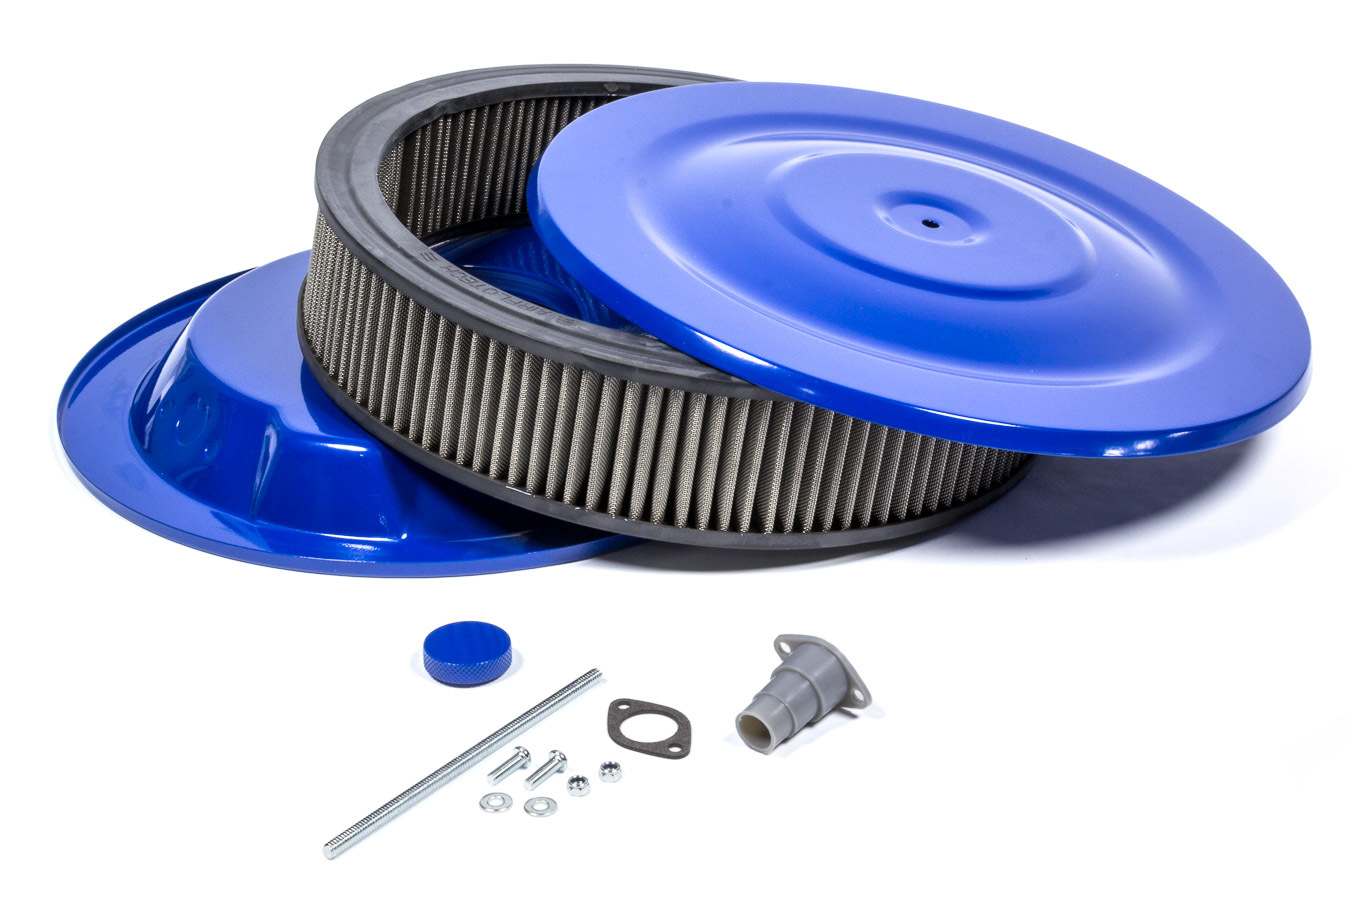 Mr Gasket 1414G Air Cleaner Assembly, Easy Flow, 14 in Round, 3 in Tall, 5-1/8 in Carb Flange, Drop Base, Steel, Blue Powder Coat, Kit